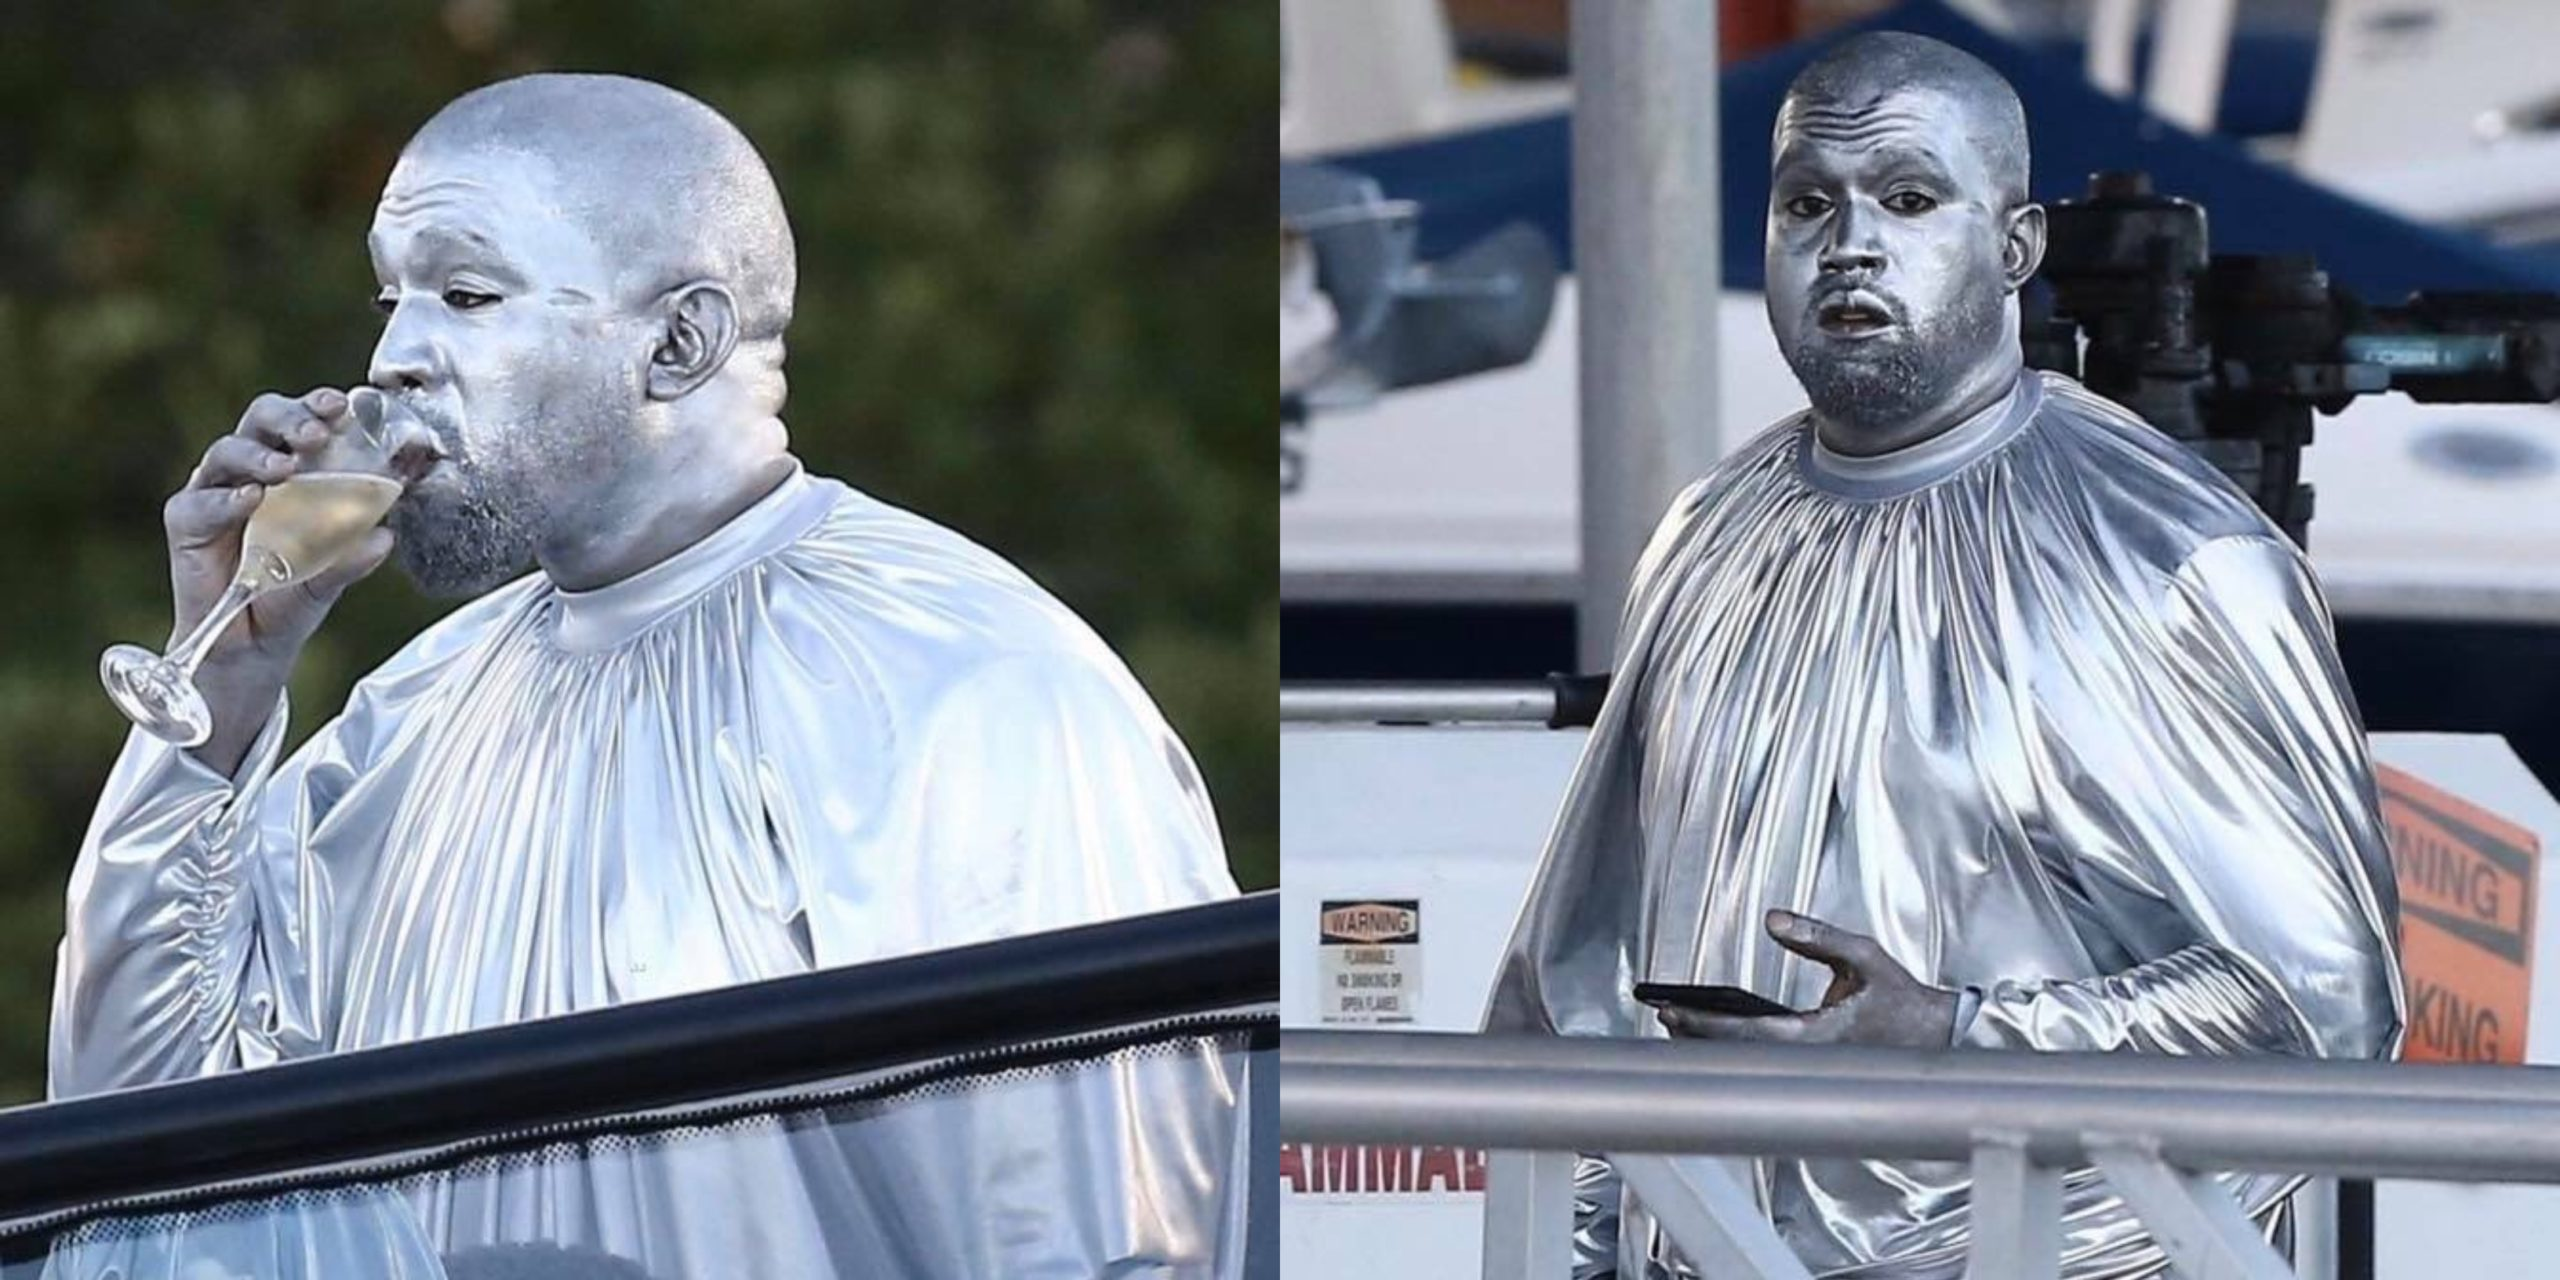 Kanye West paints entire body silver for performance in Miami (Photos)